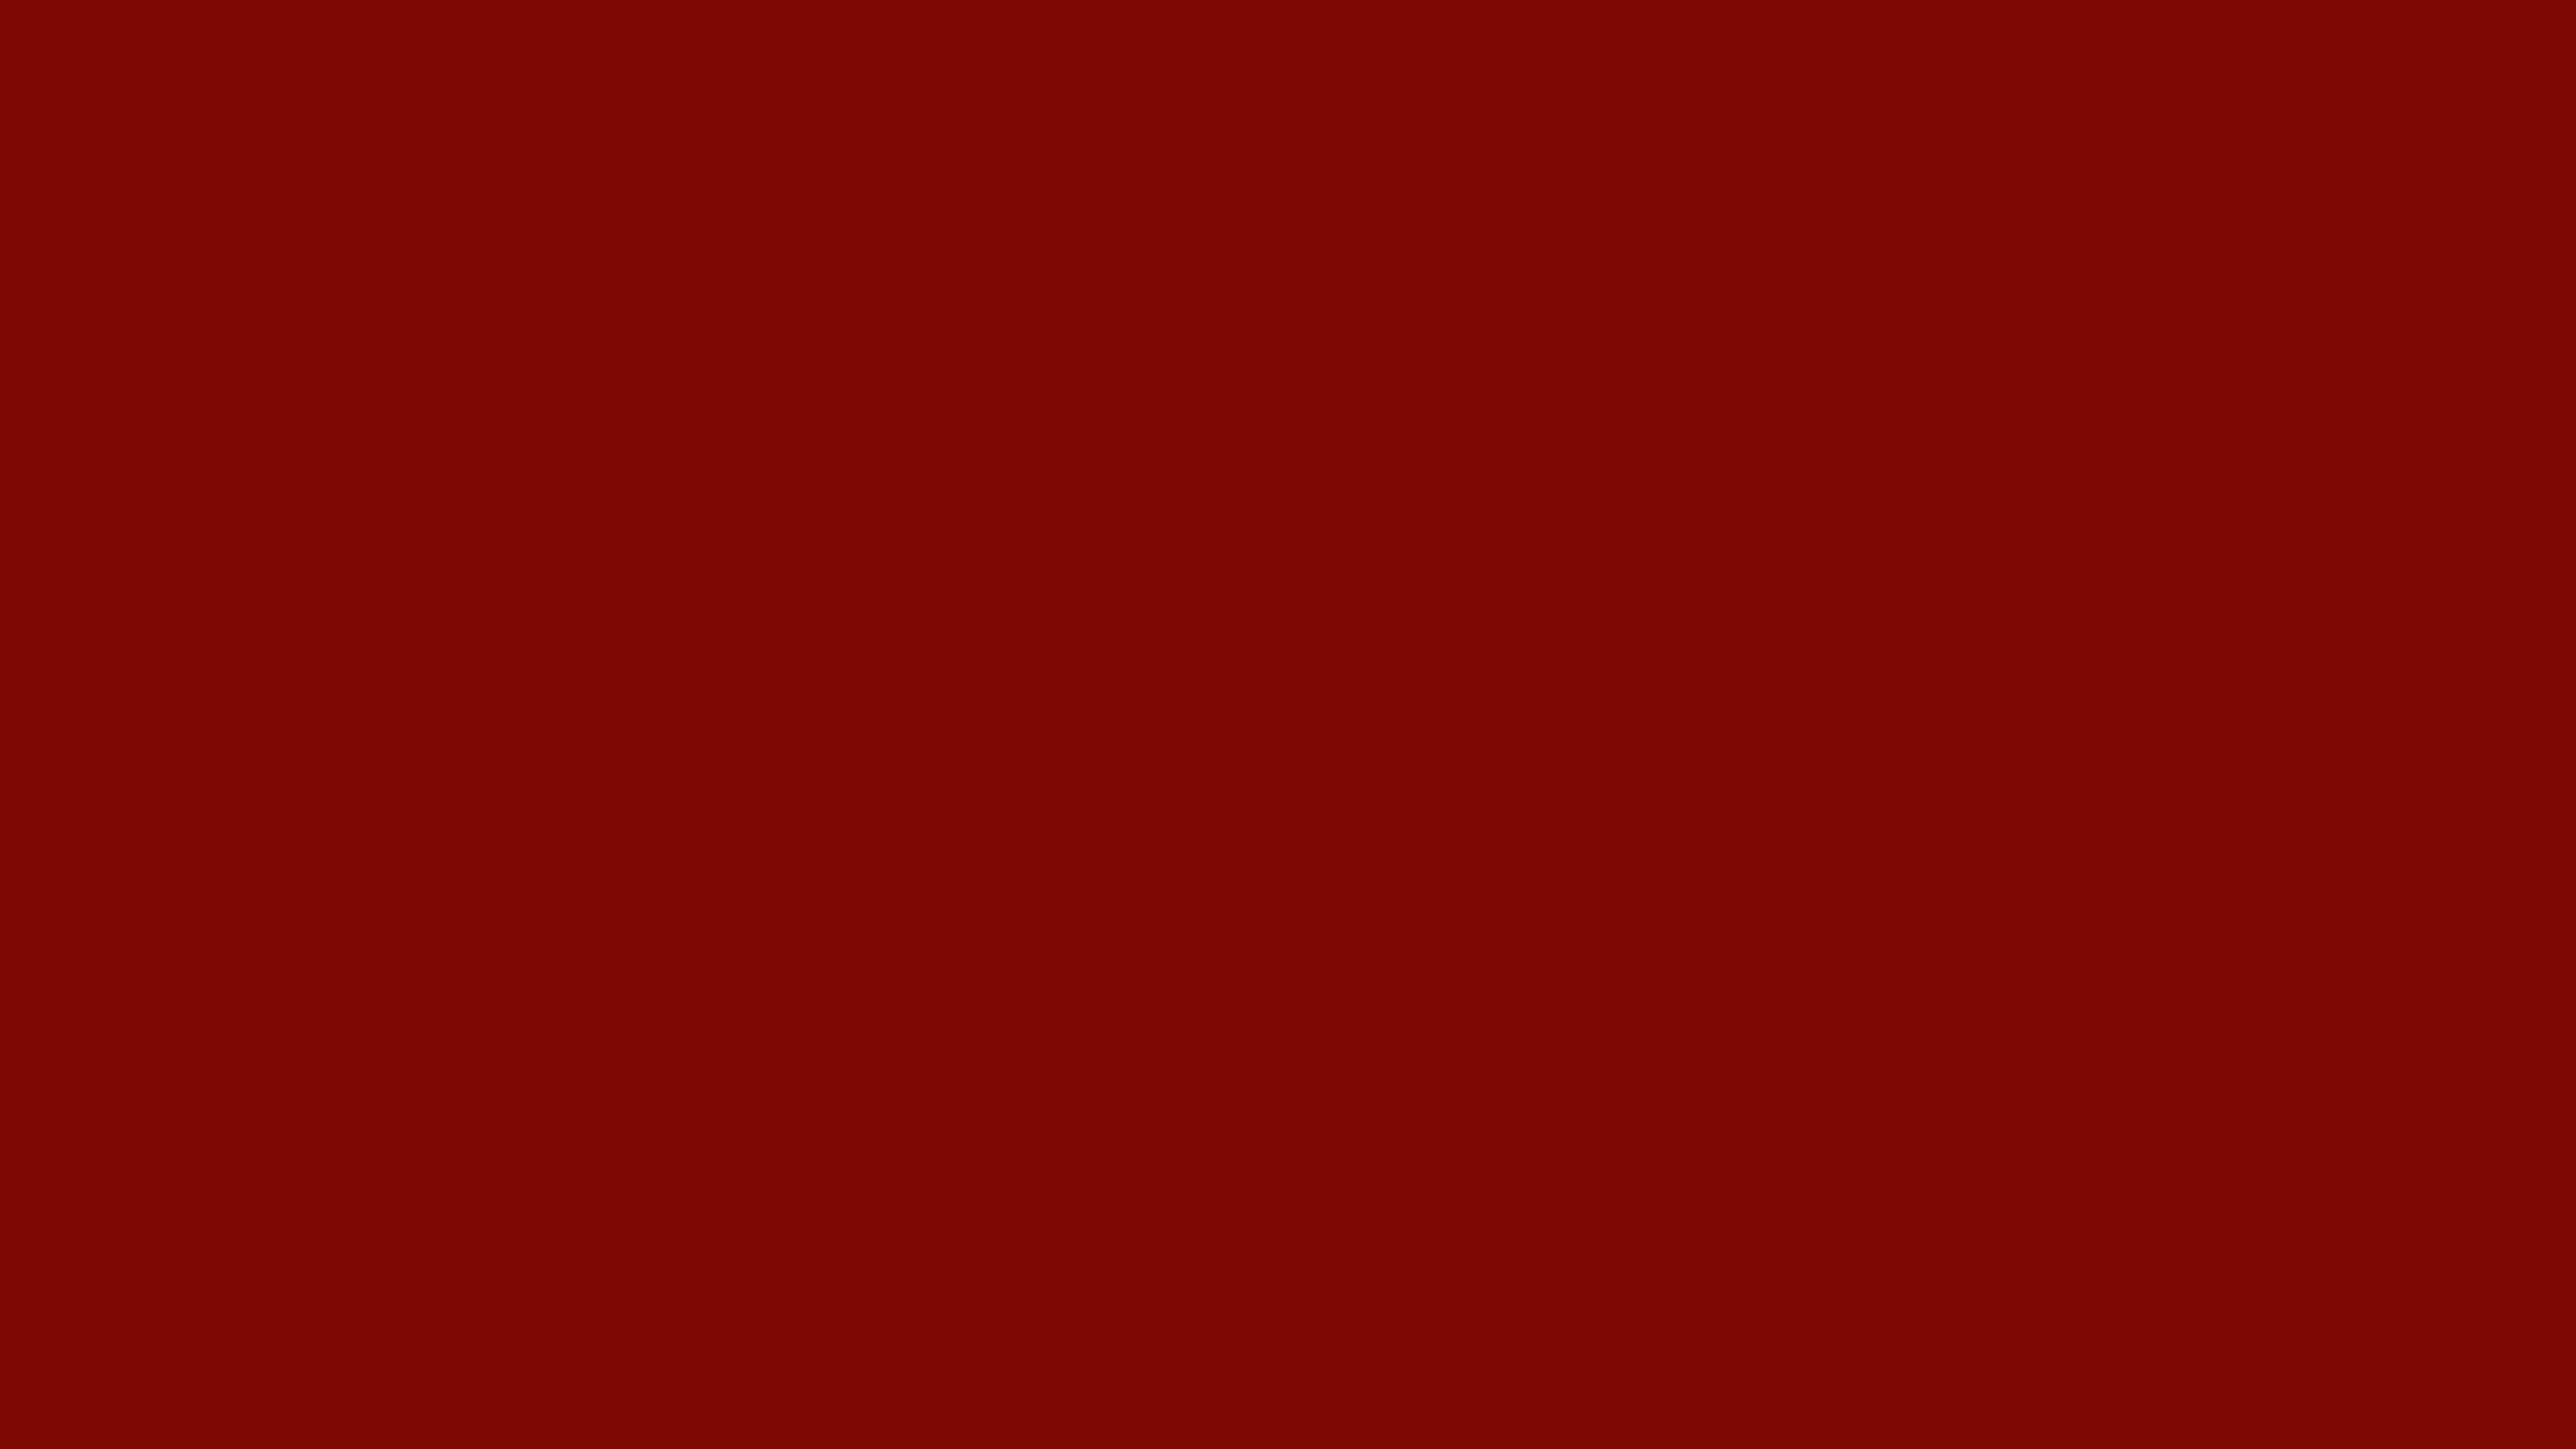 3840x2160 Barn Red Solid Color Background